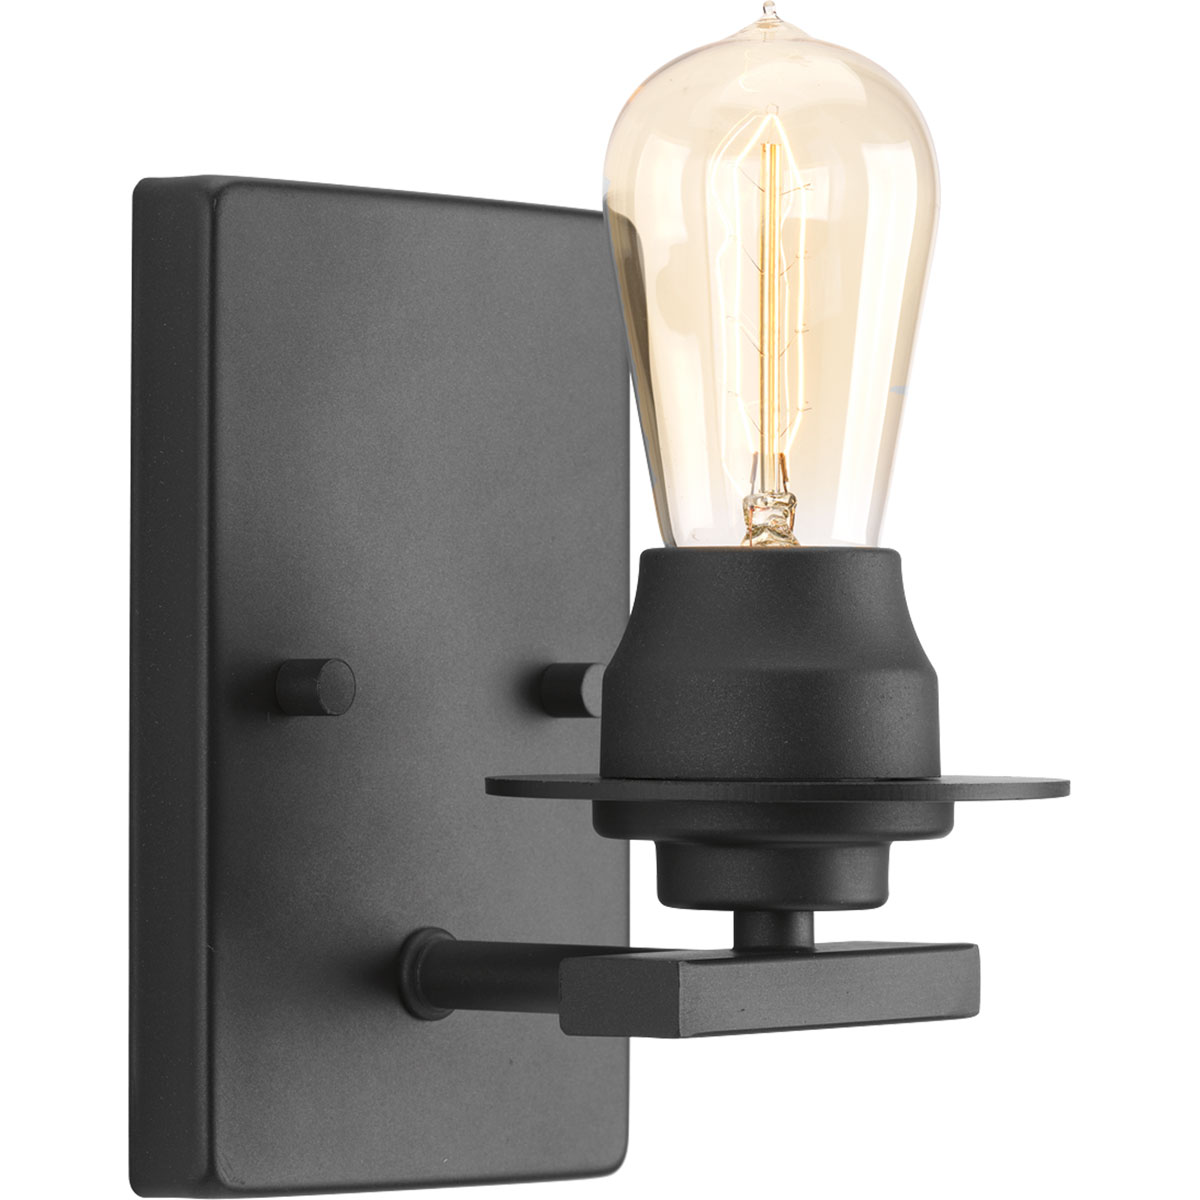 Graphite wall sconce with Edison bulb from Progress Lighting